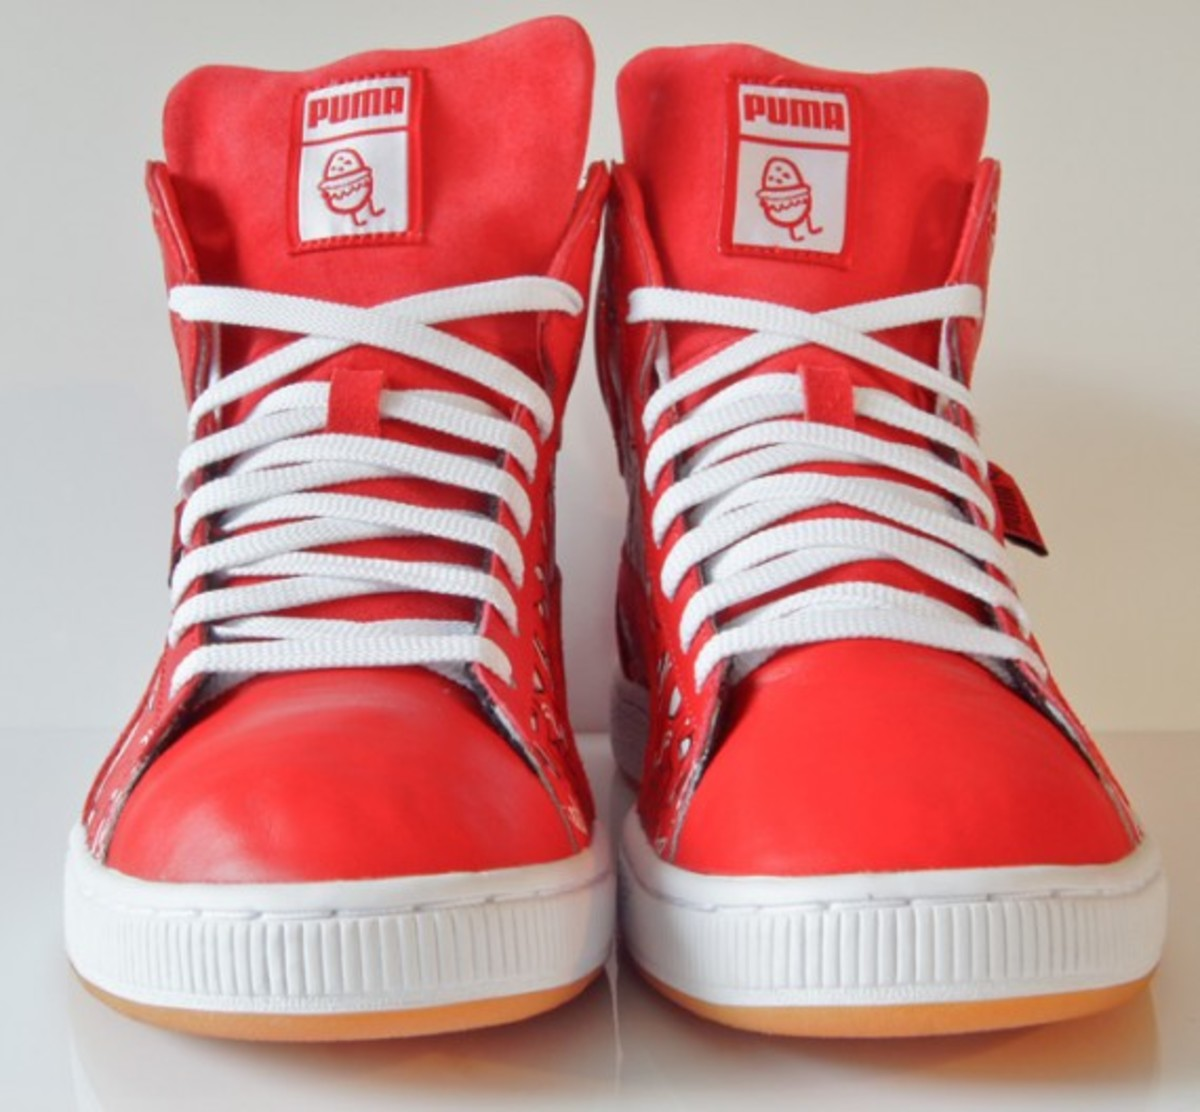 puma jon burgerman first round red 4